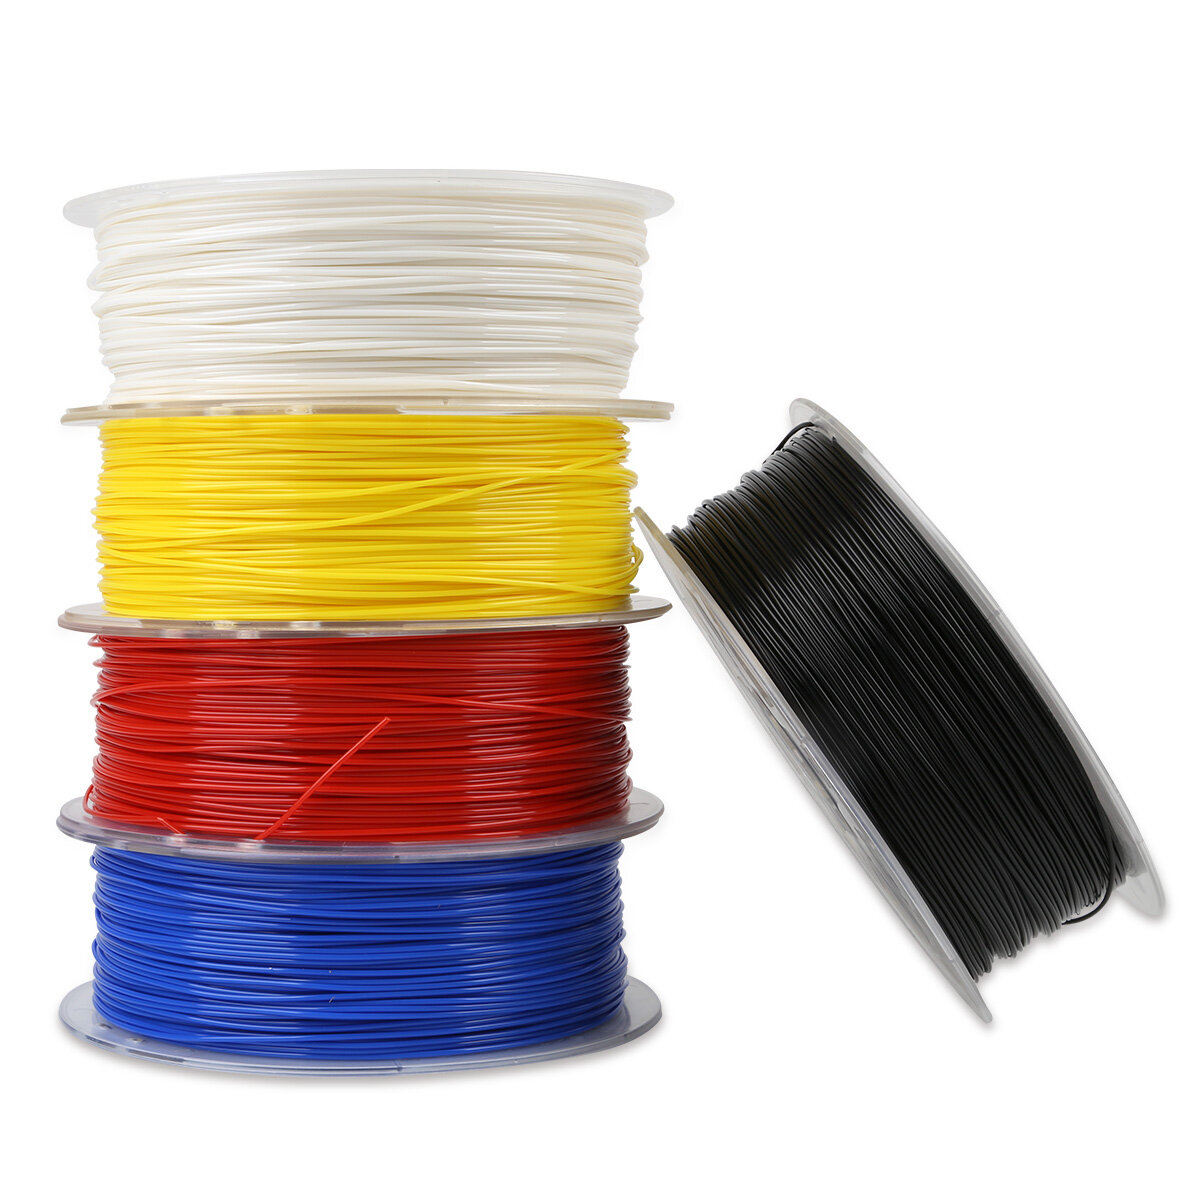 Creality 3D White/Black/Yellow/Blue/Red 1KG 1.75mm PLA Filament For 3D Printer